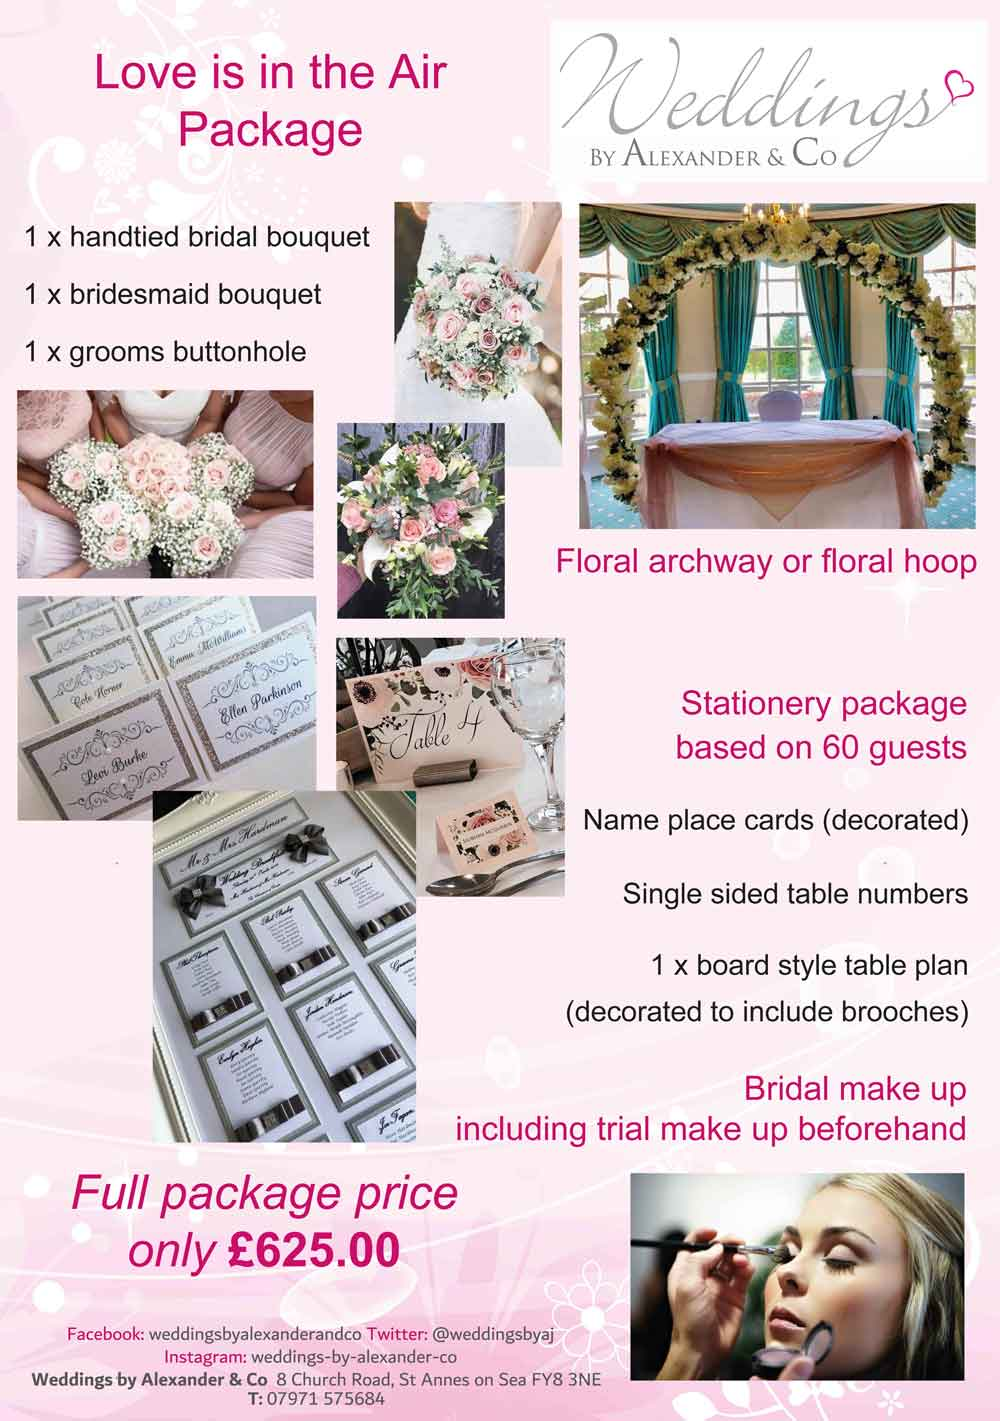 Superb Love Is In The Air wedding package - flowers, floral archway, stationery & bridal make-up